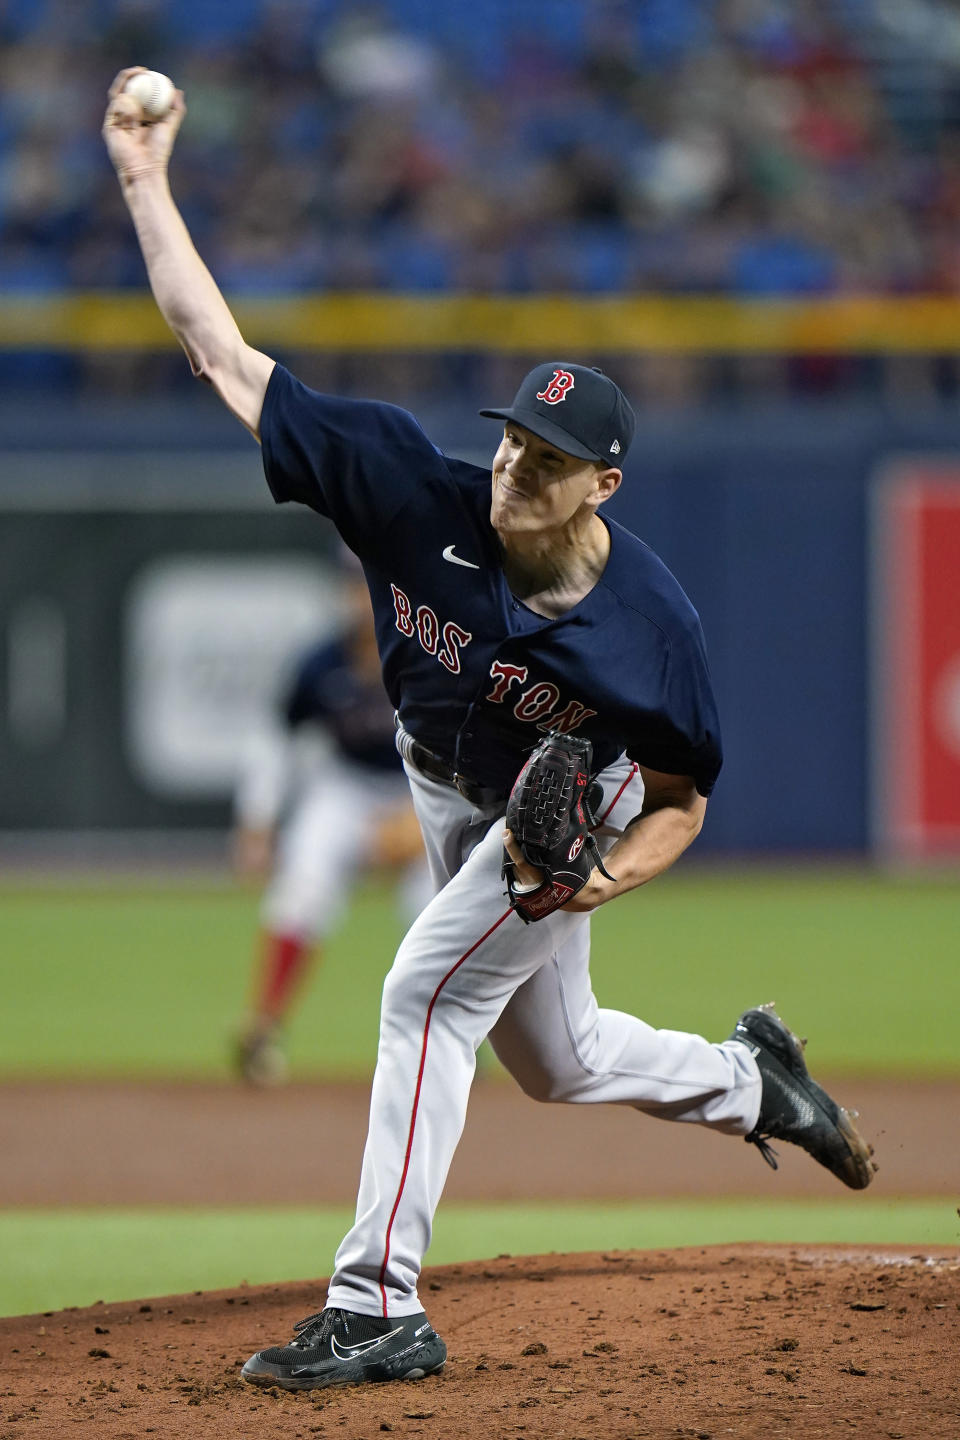 Boston Red Sox starting pitcher Nick Pivetta delivers to the Tampa Bay Rays during the first inning of a baseball game Thursday, June 24, 2021, in St. Petersburg, Fla. (AP Photo/Chris O'Meara)